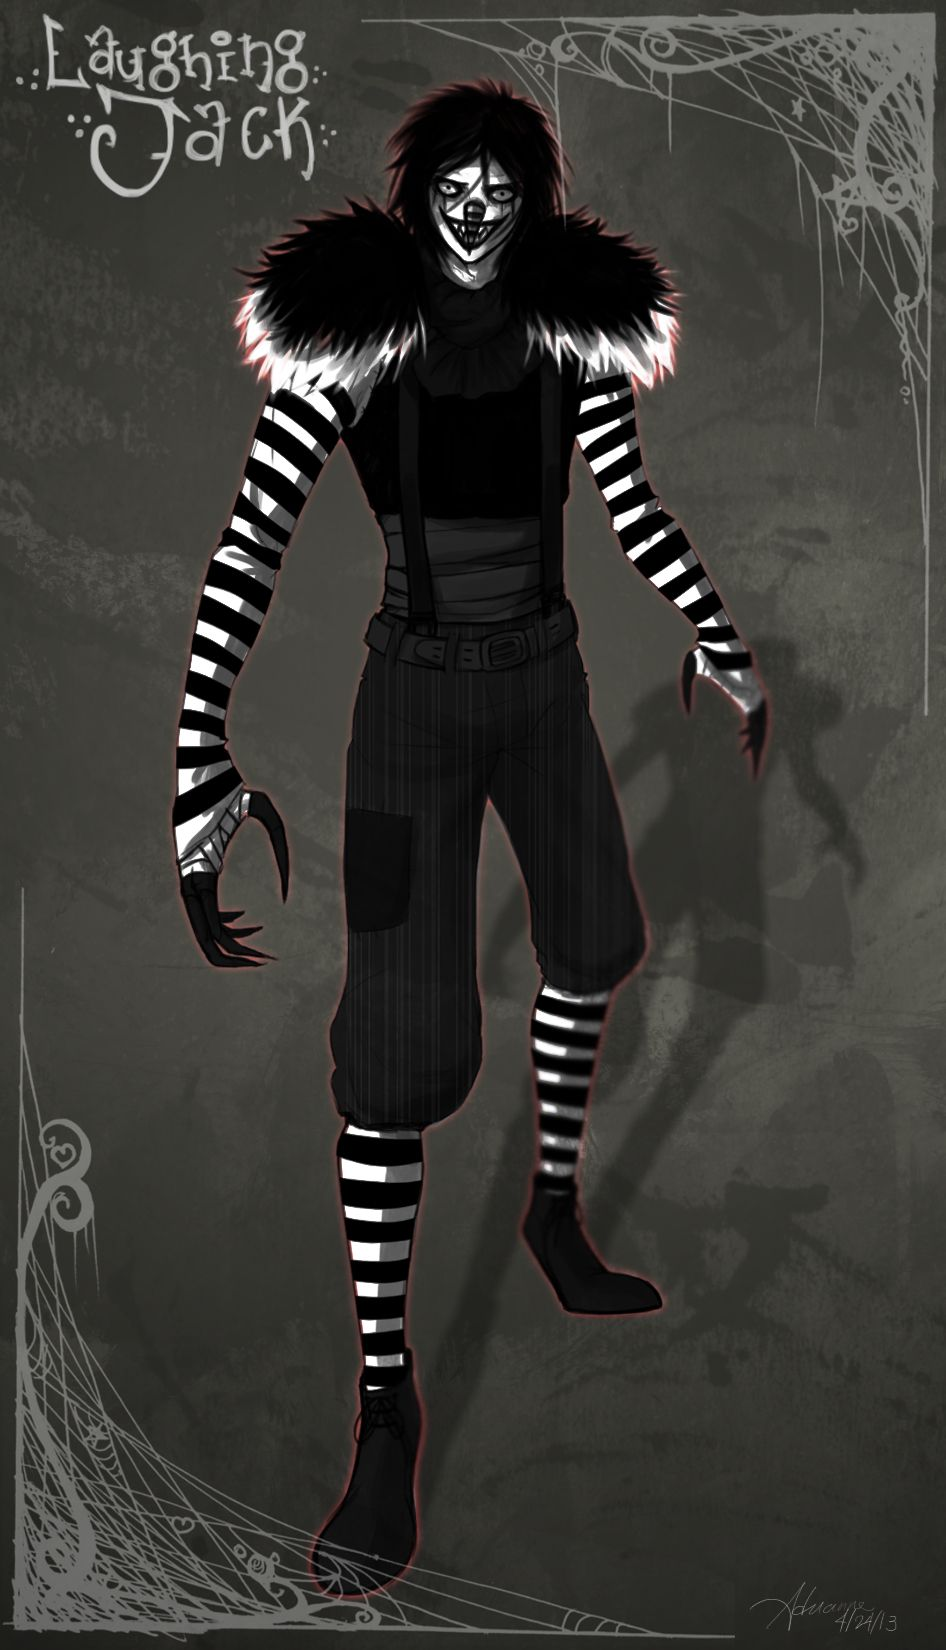 Pin by Abby Normal on Creepypasta | Laughing jack, Jack